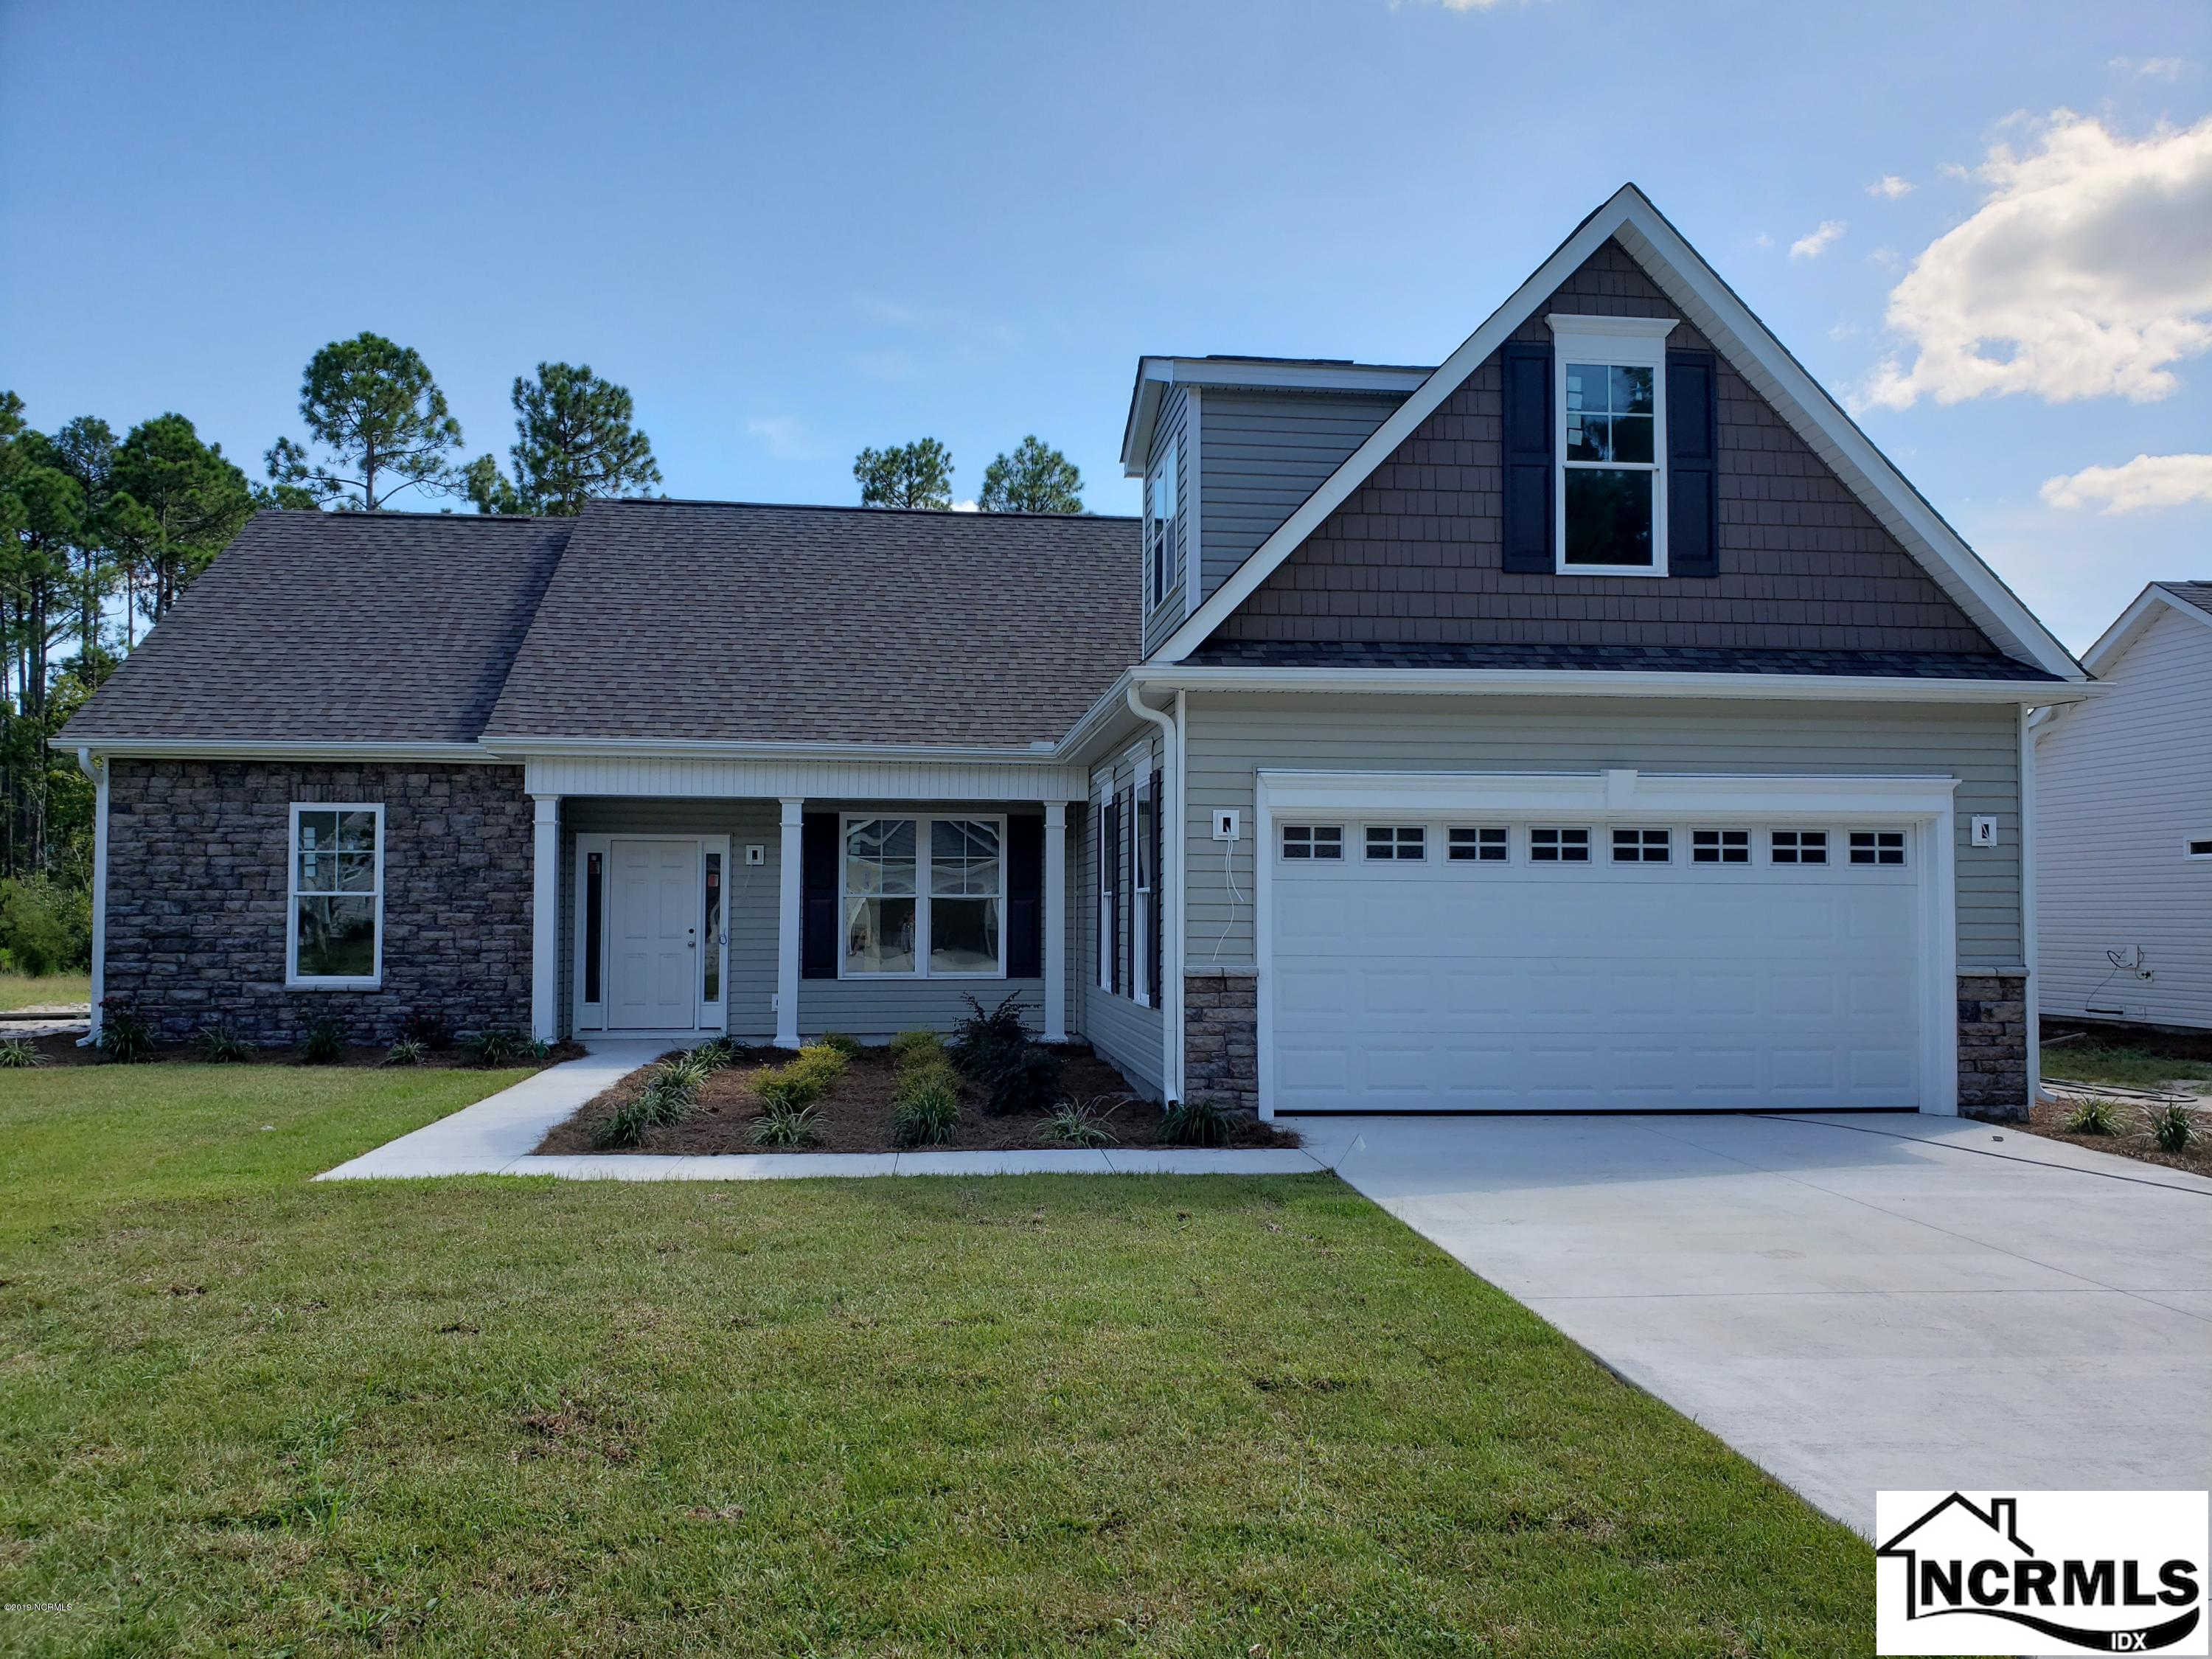 15 Edinburgh Drive NW, Shallotte, NC 28470 now has a new price of $246,425!